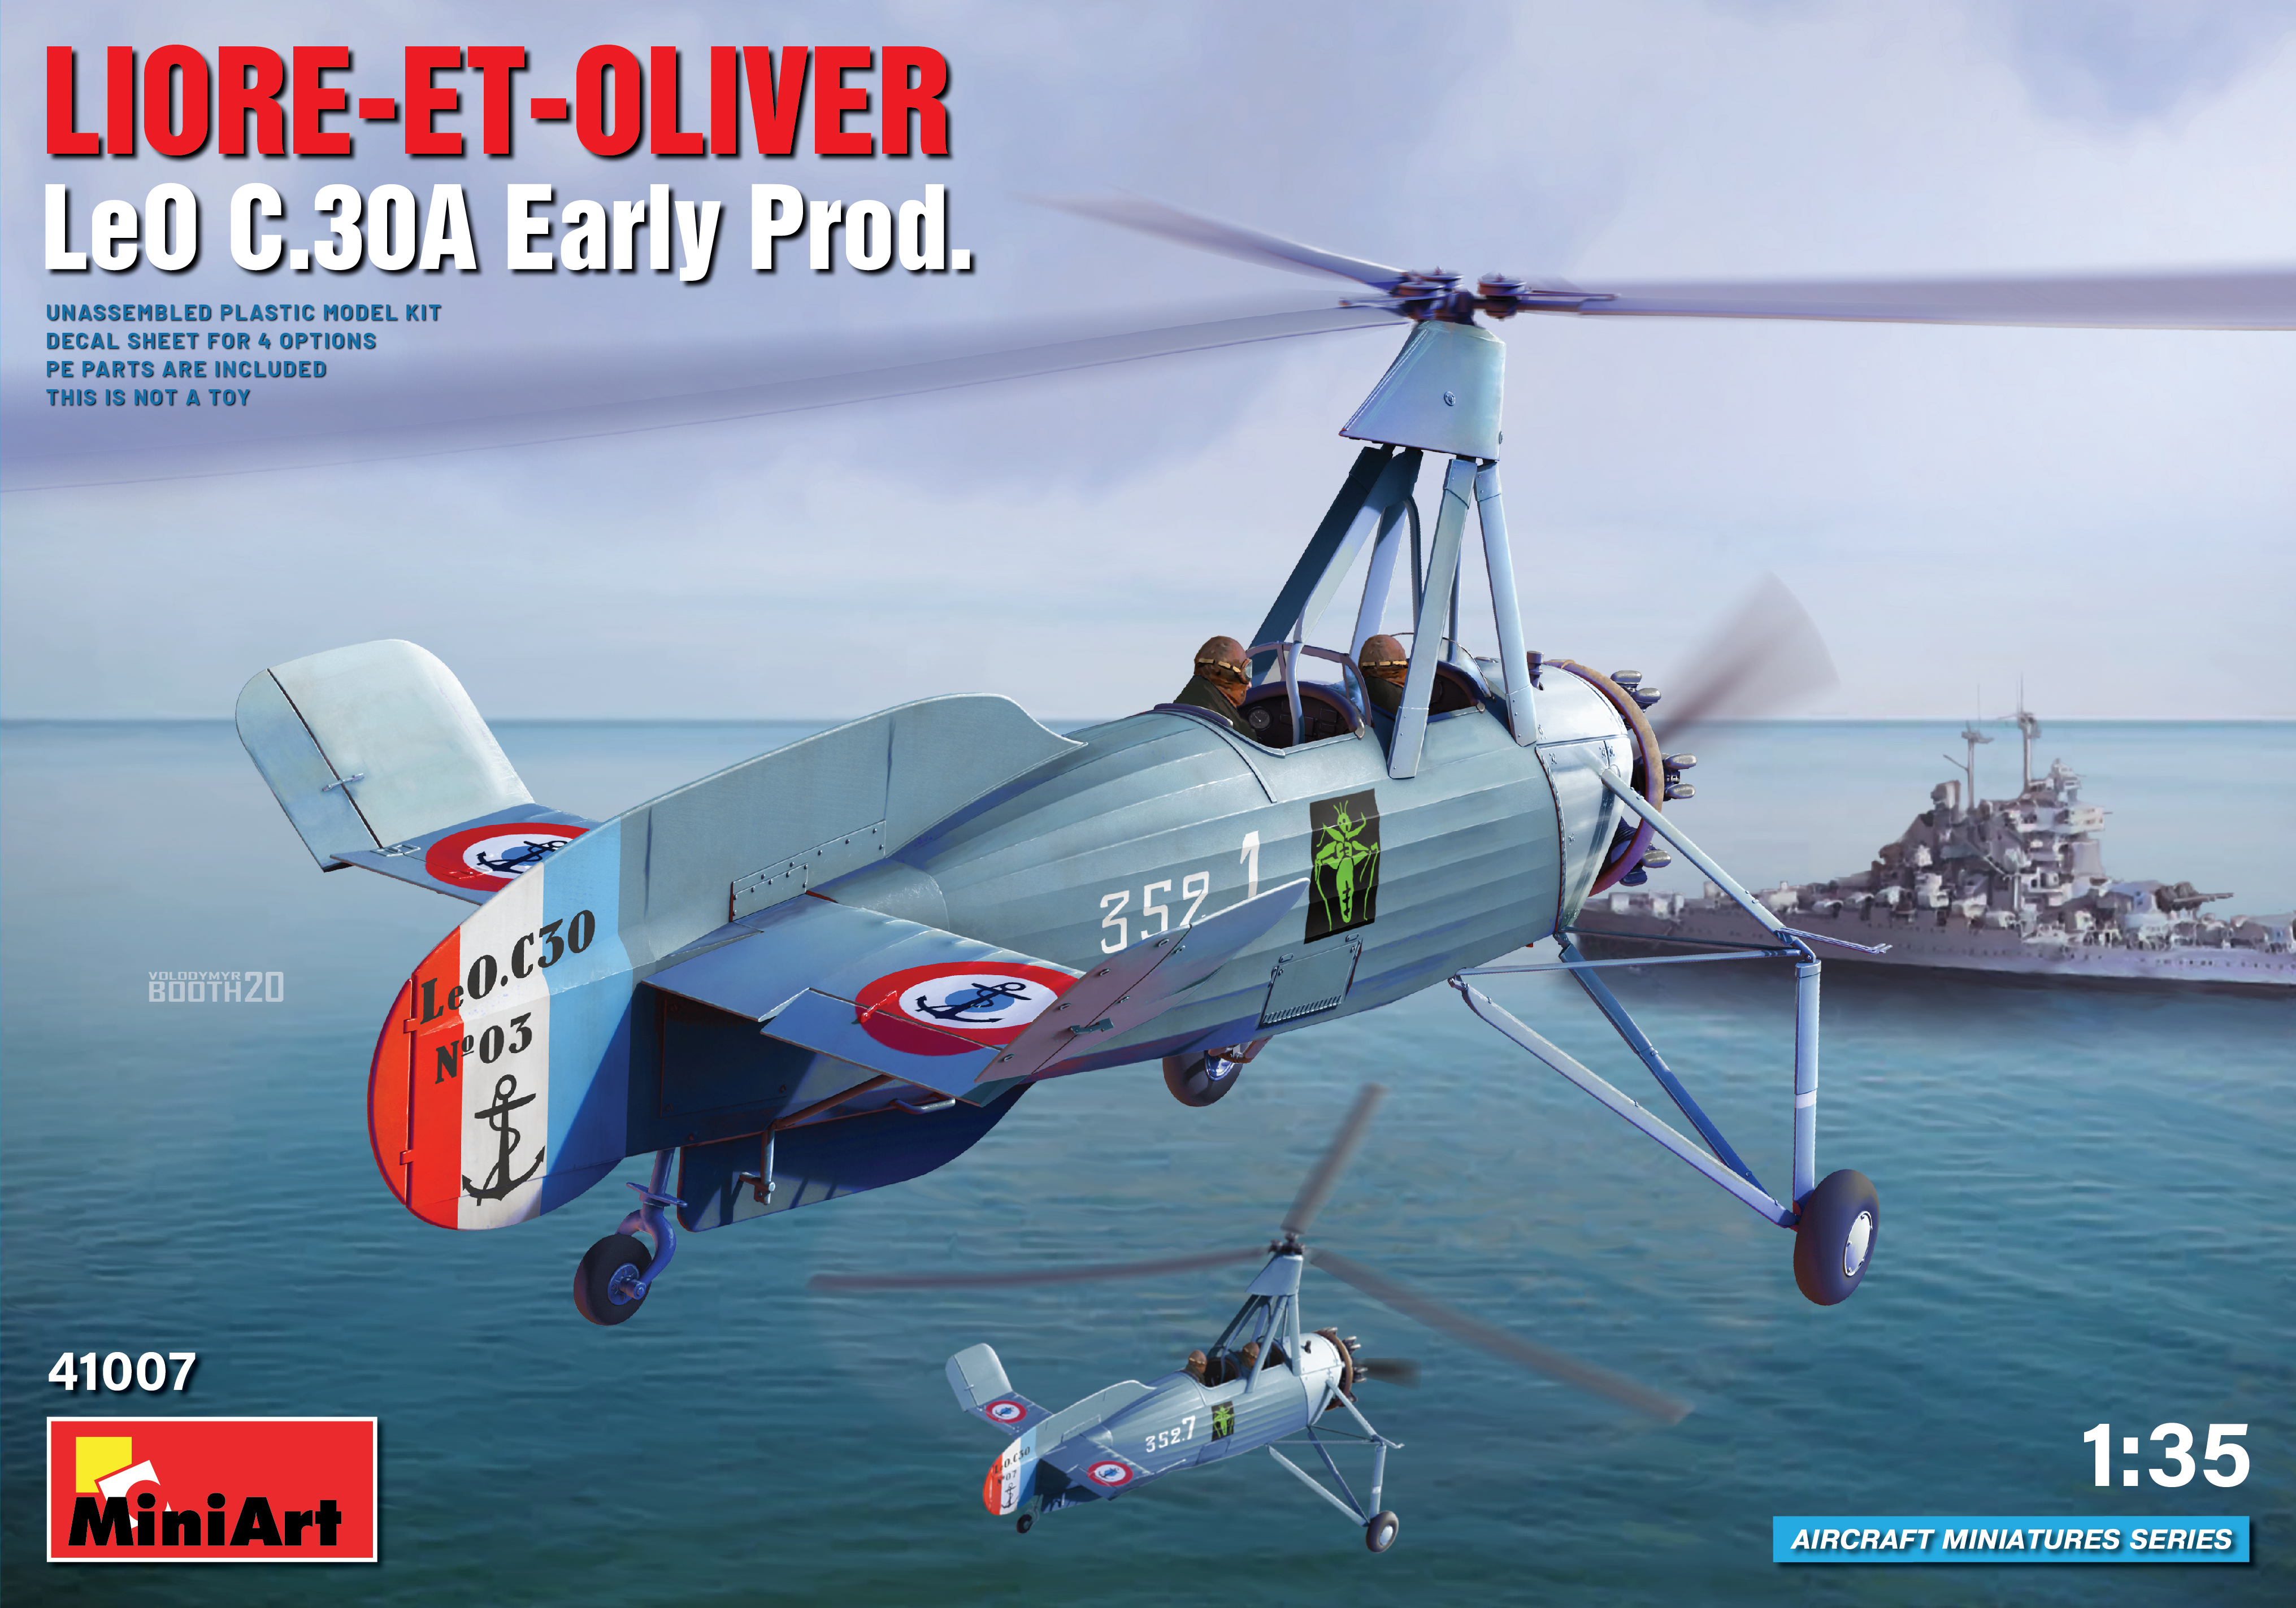 MiniArt Liore-et-Oliver LeO C.30A Early Prod